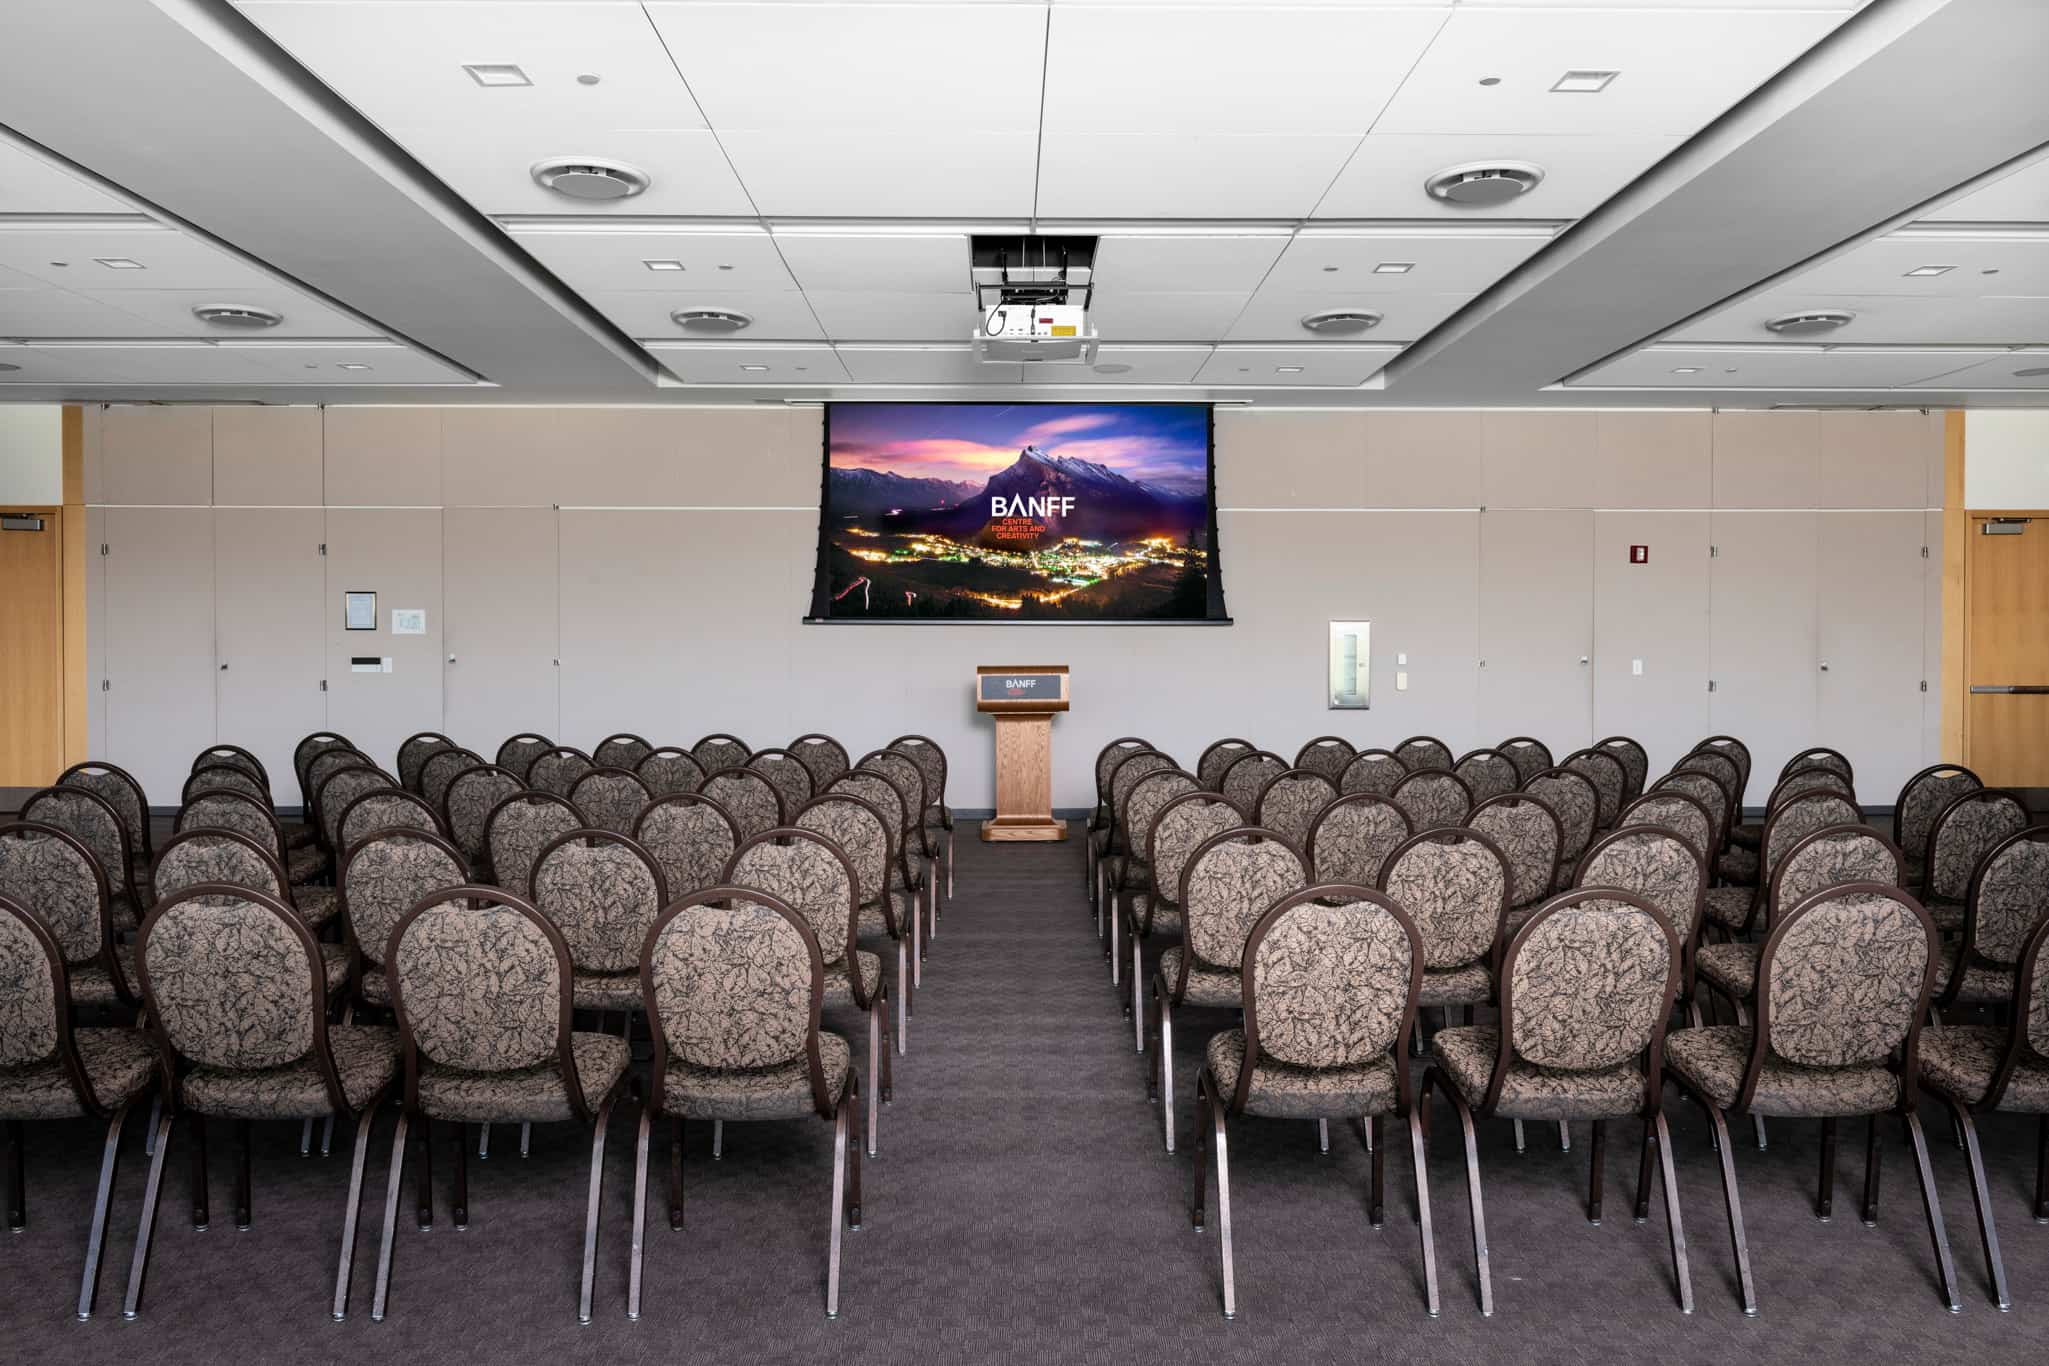 Smaller Presentation room equipped with a podium, screen and chairs.